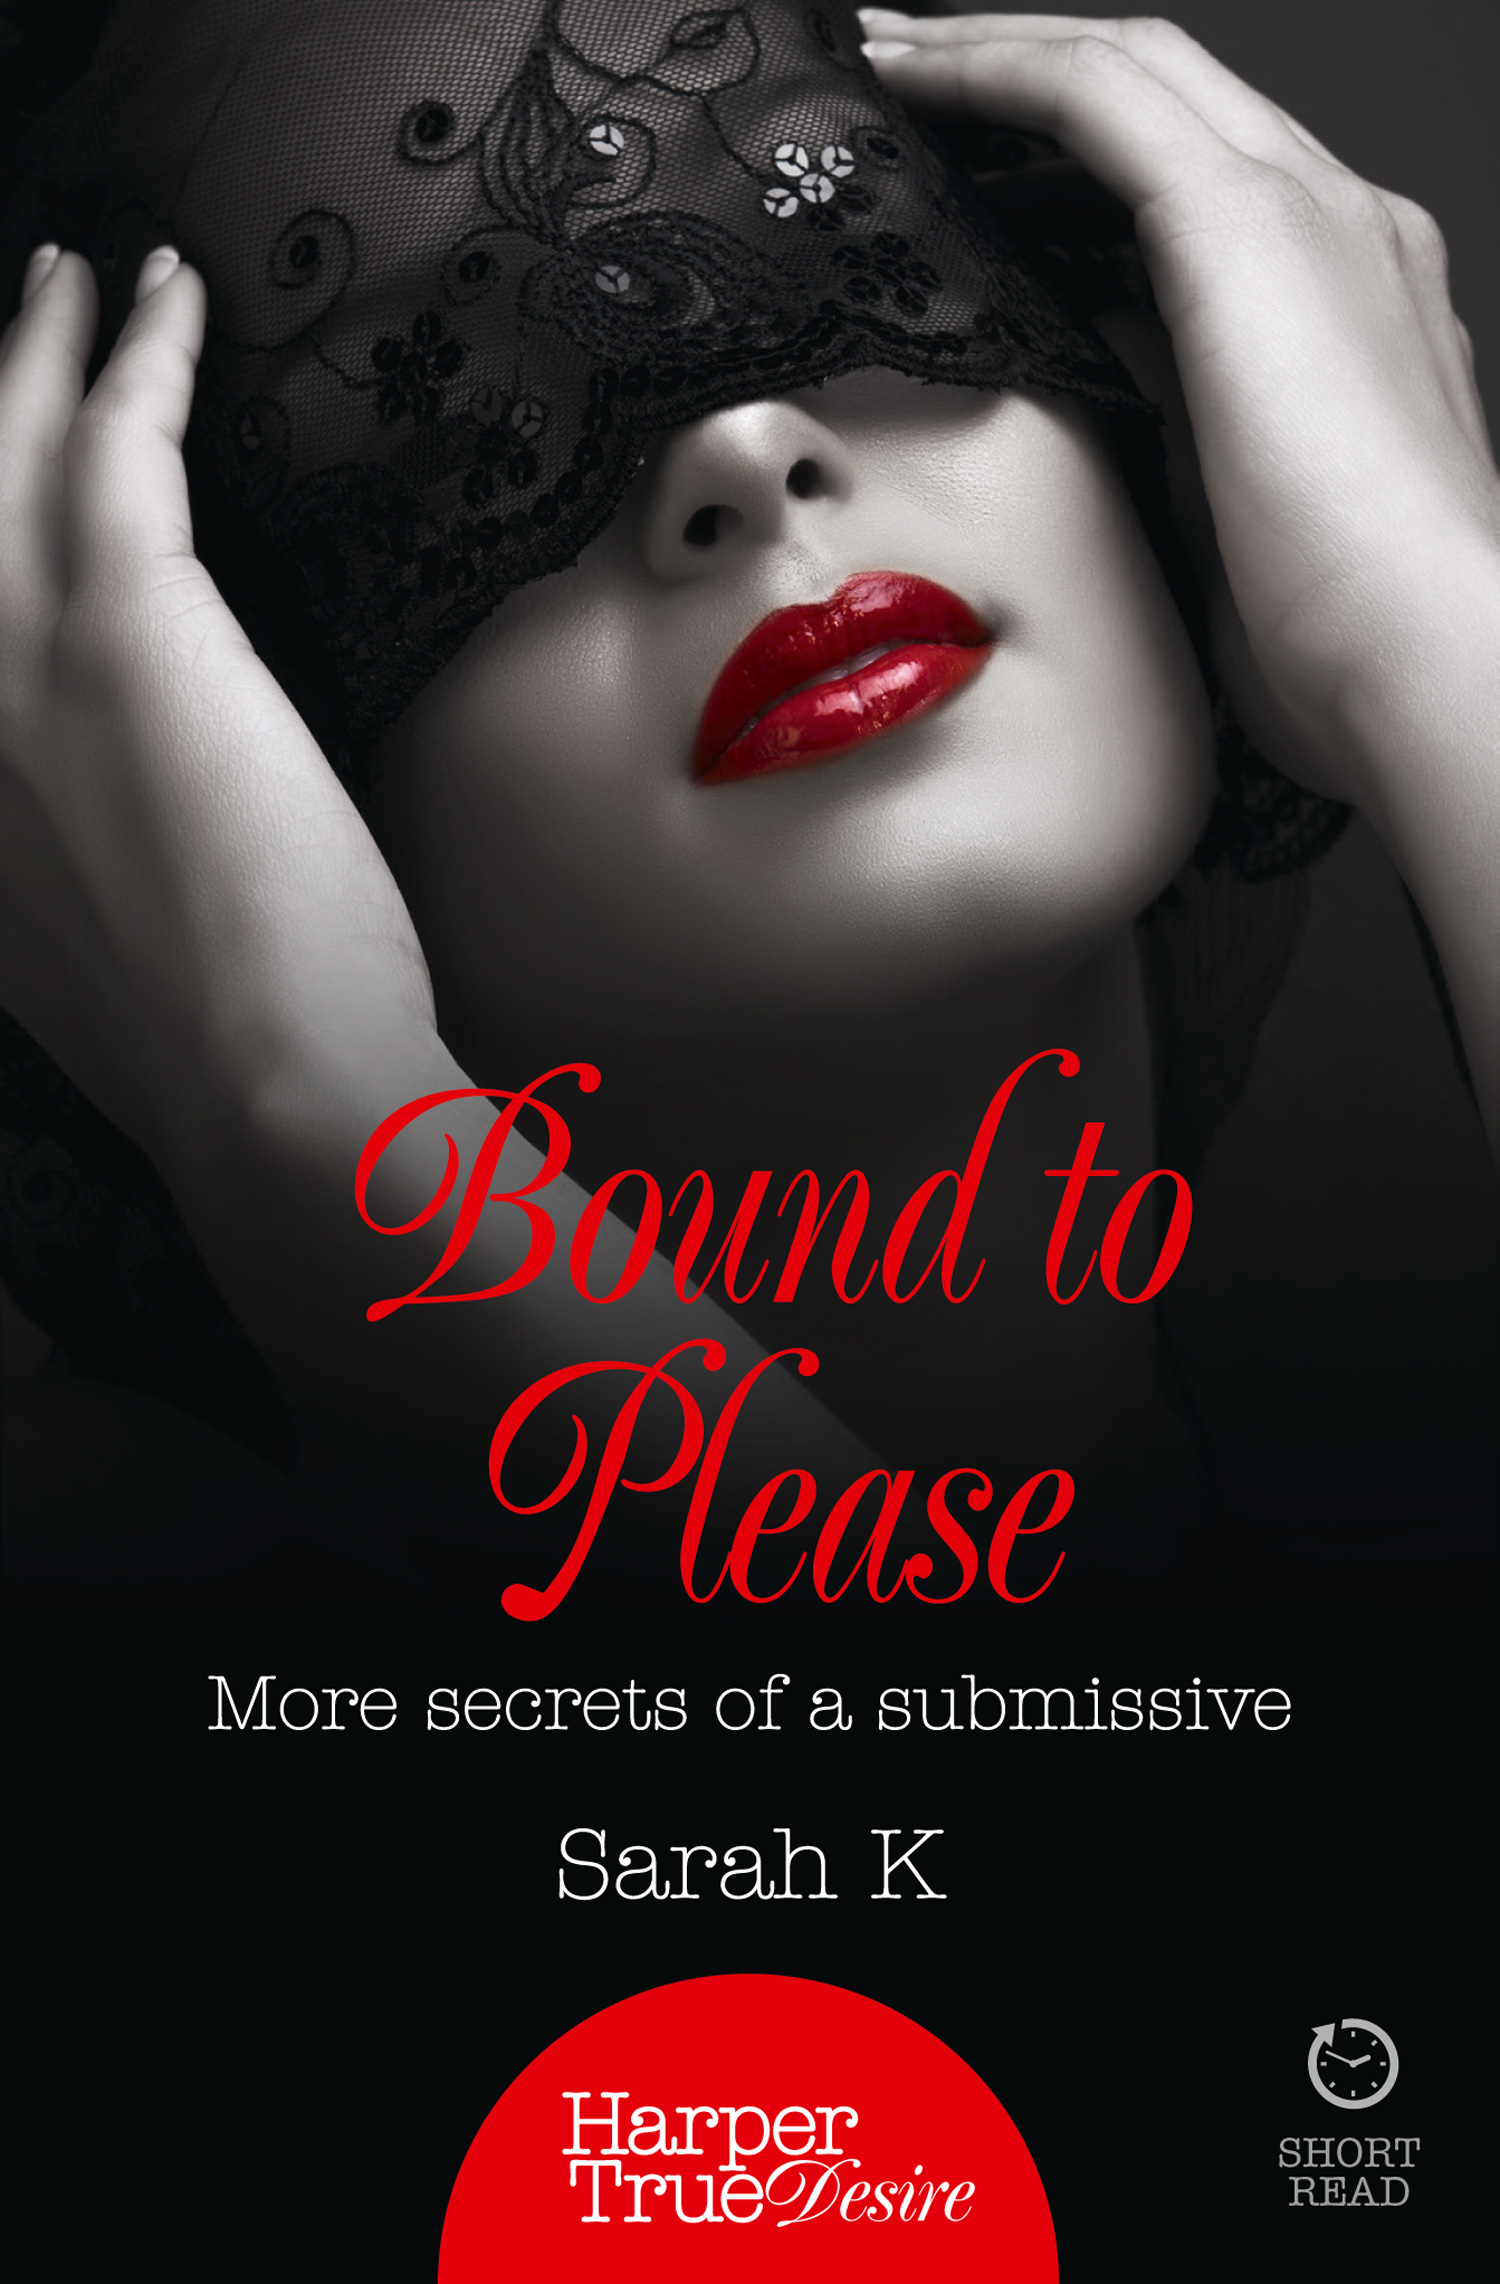 Bound to Please: More secrets from a submissive (HarperTrue Desire ? A Short Read)